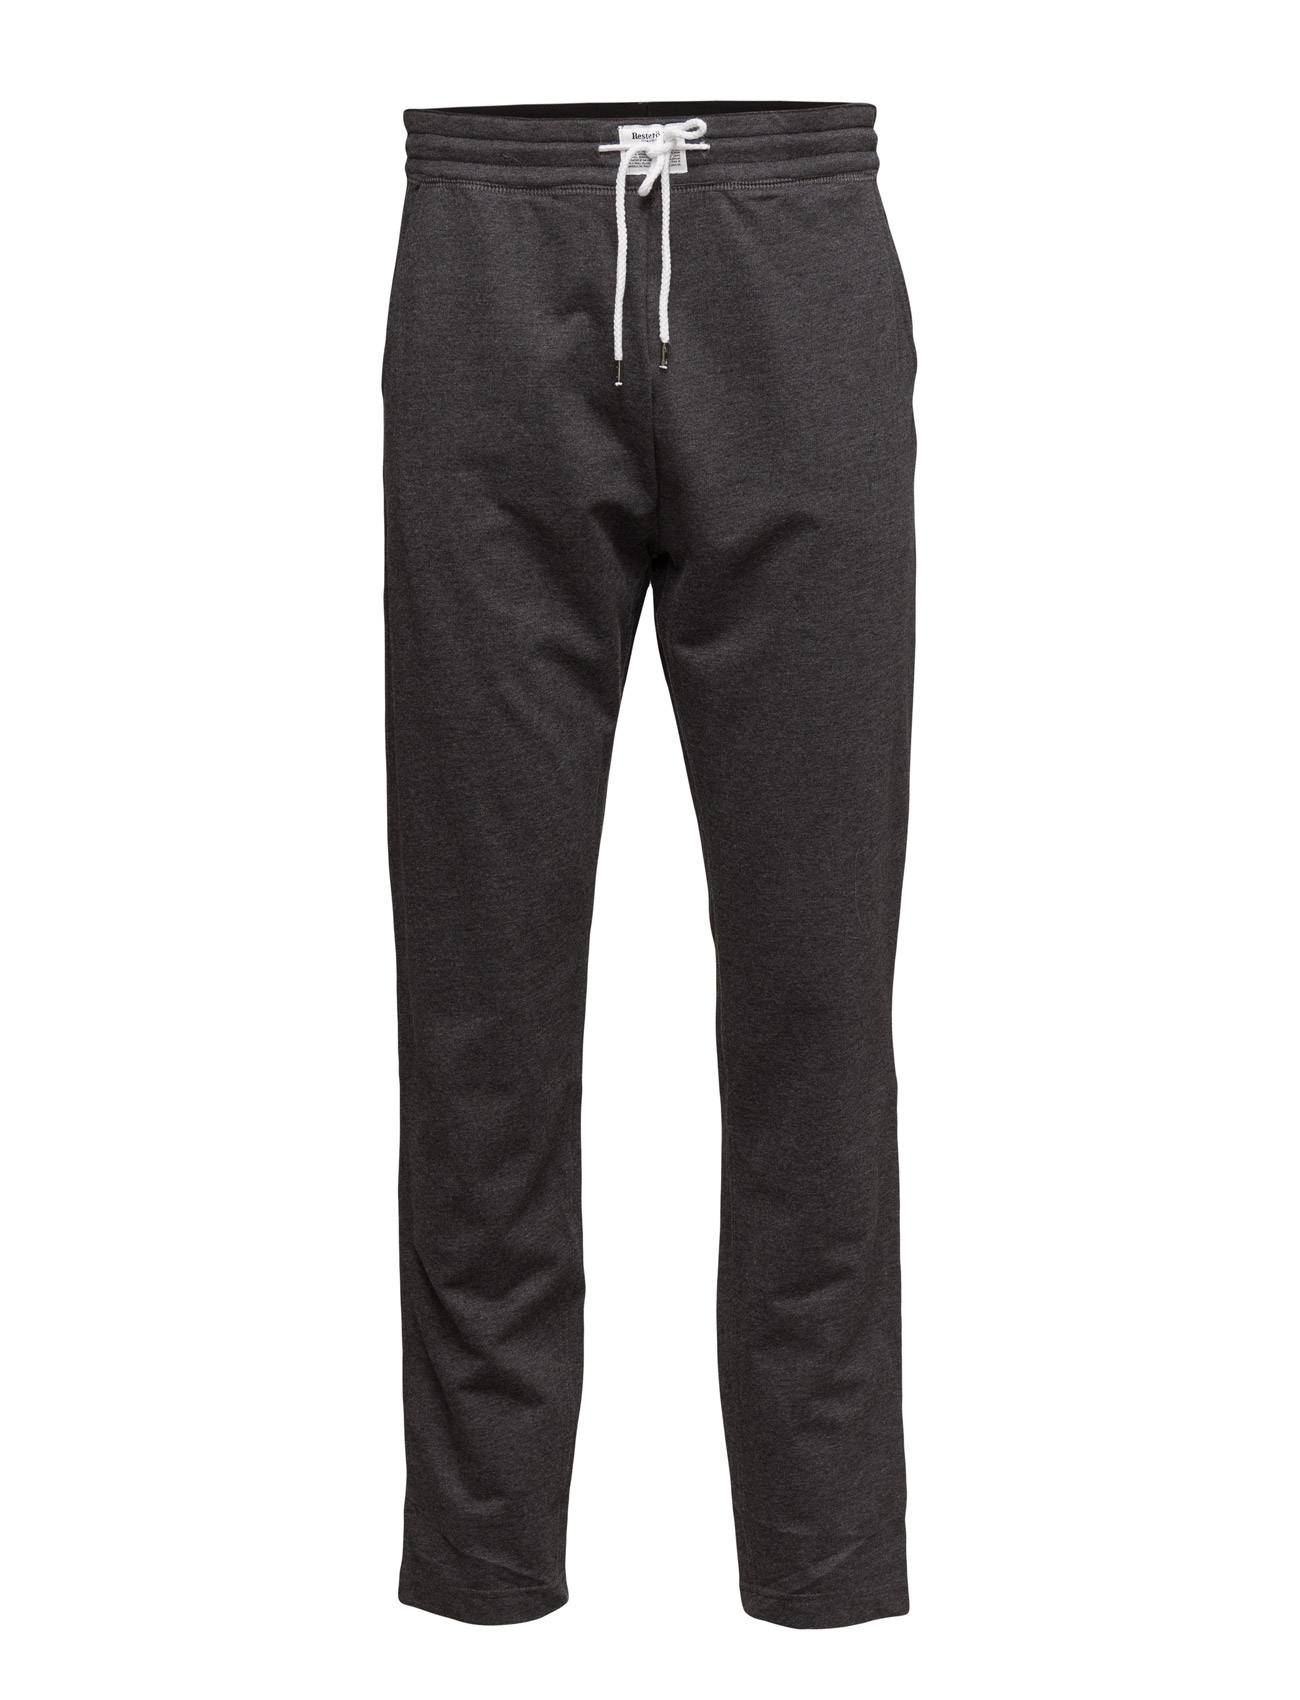 Resteröds Original Sweat Pant